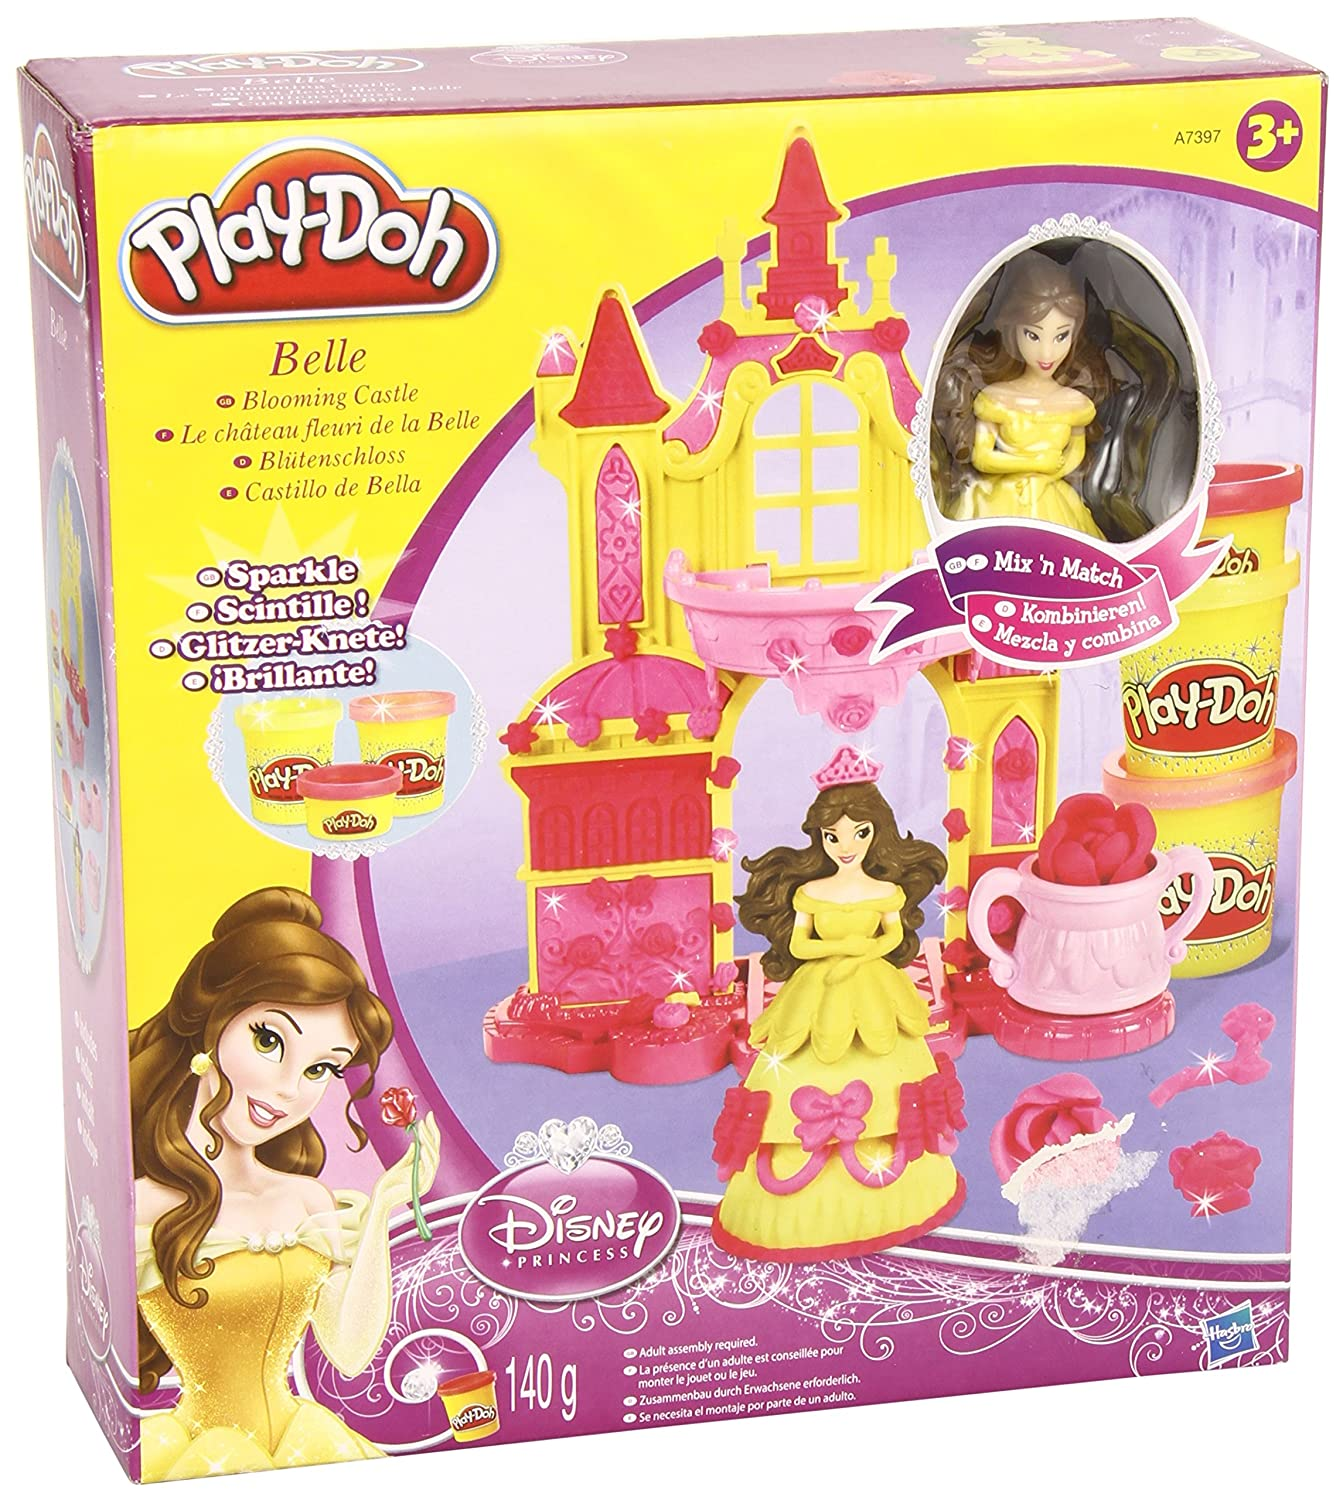 Disney Princess Play Doh Castle Play-doh Disney Princess